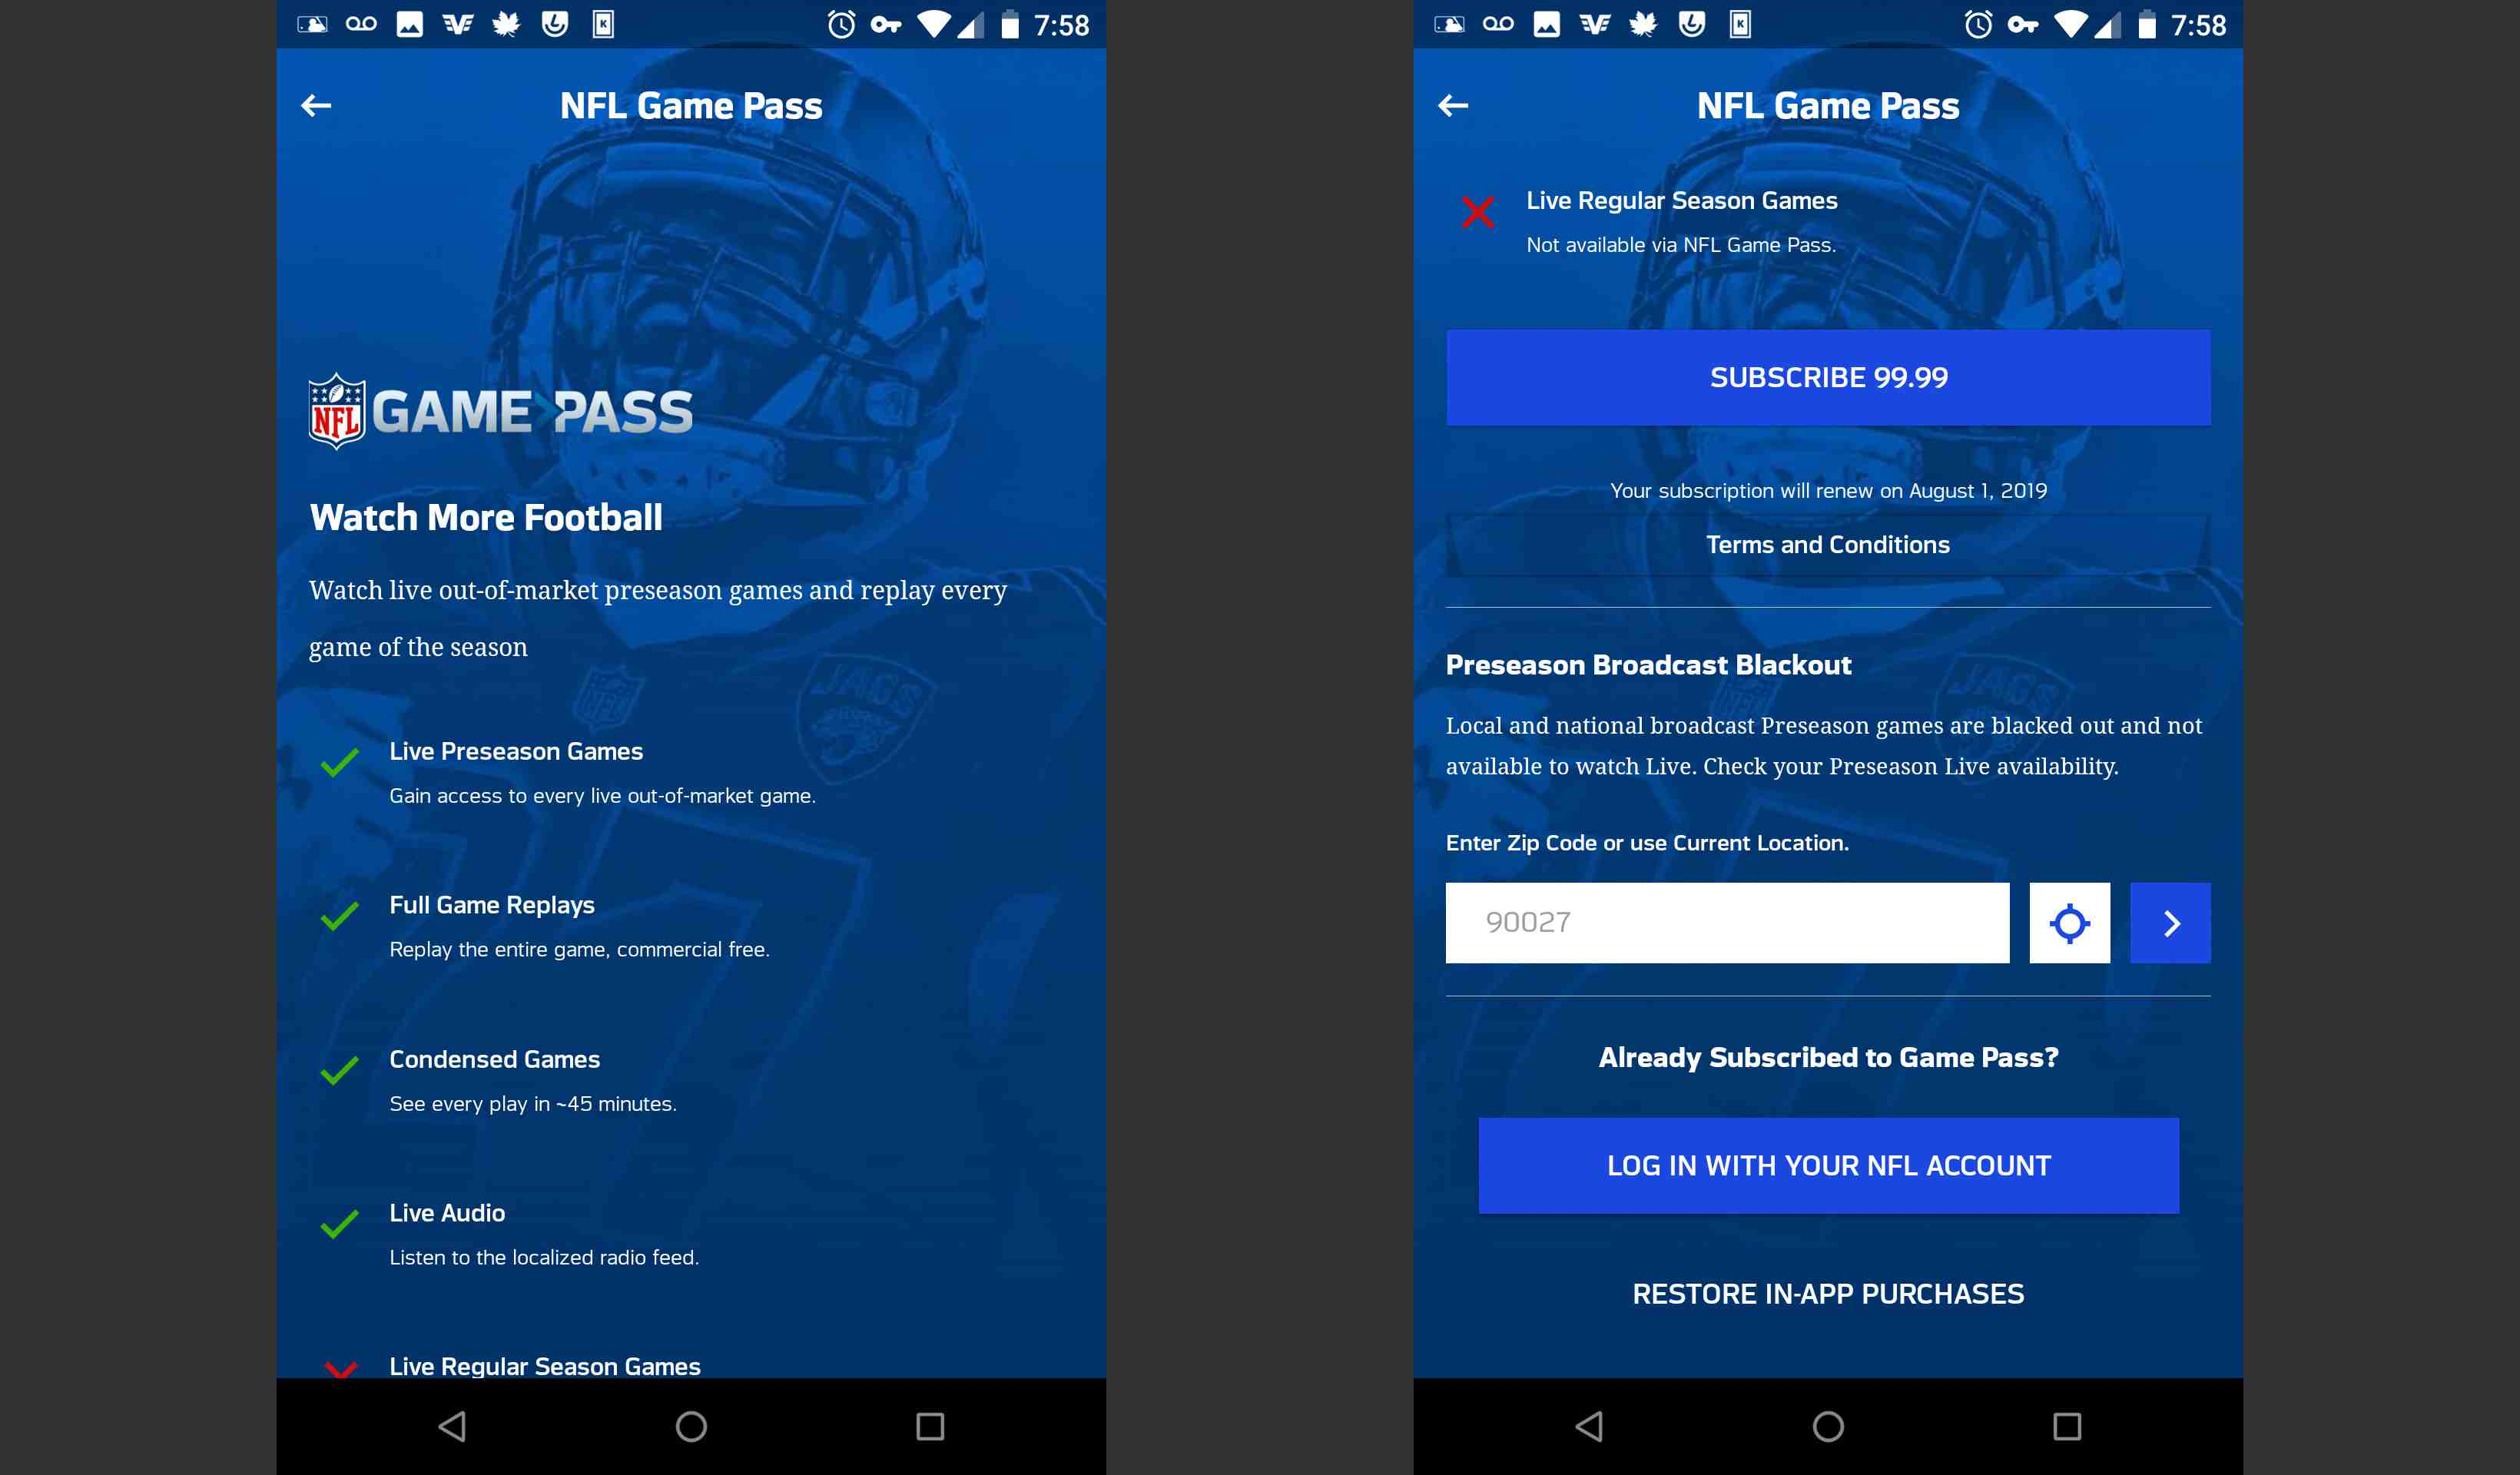 NFL Game Pass in the mobile app page